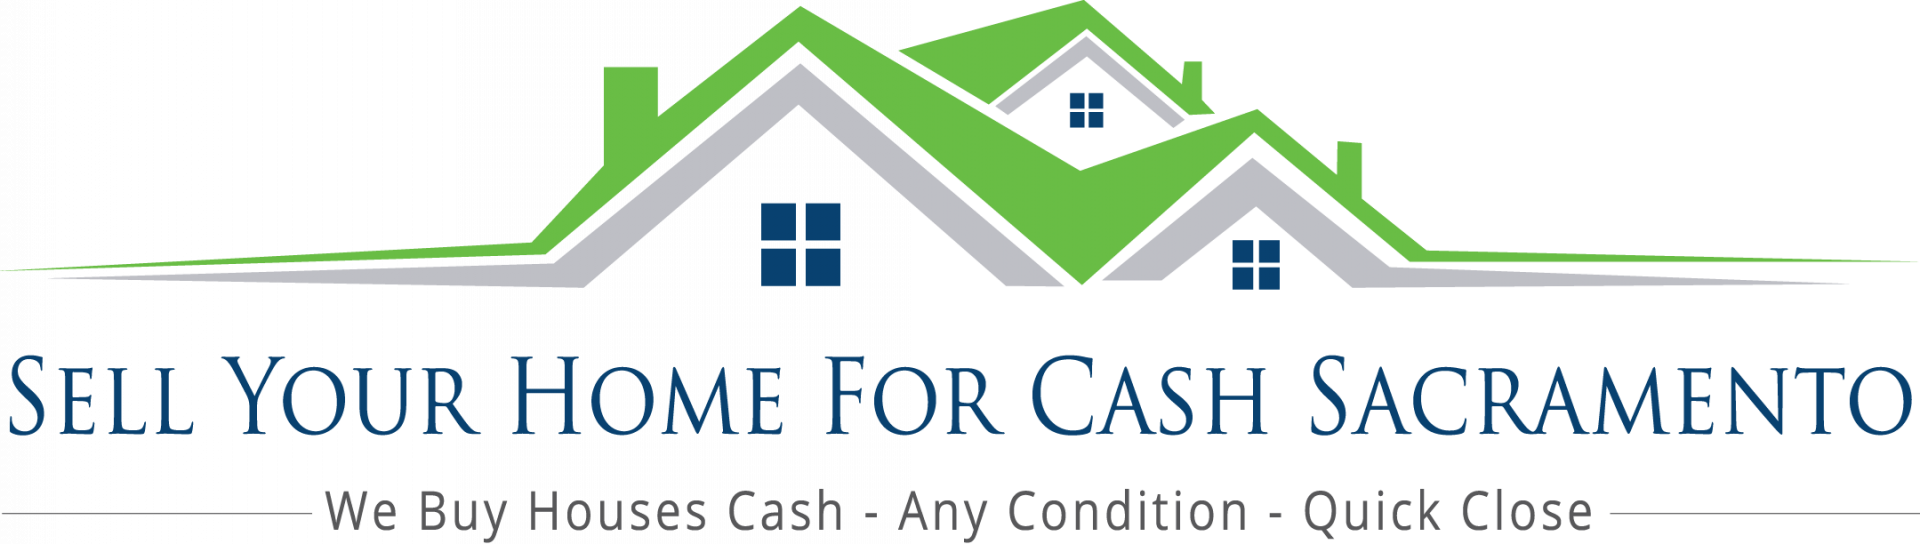 Sell Your Home For Cash Sacramento  logo